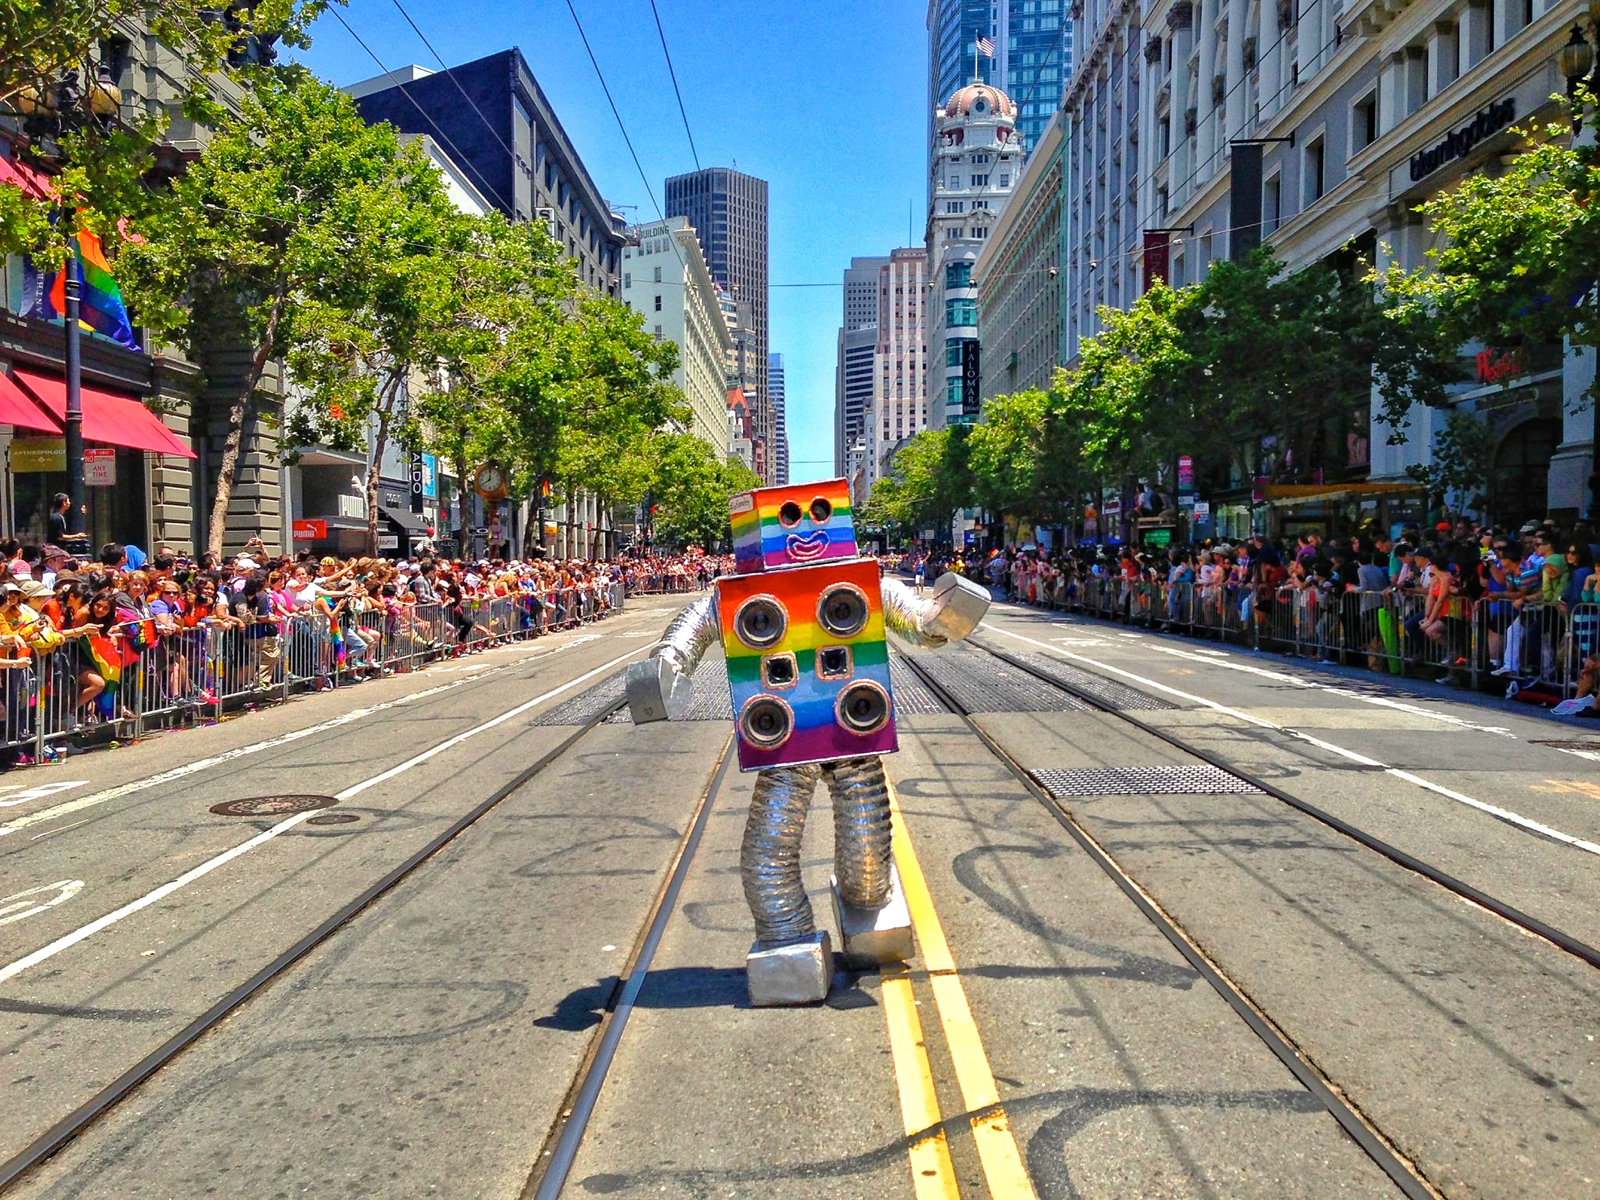 San_Francisco_Pride_2013_Mustafa_Khan_Dance_Party_Robot